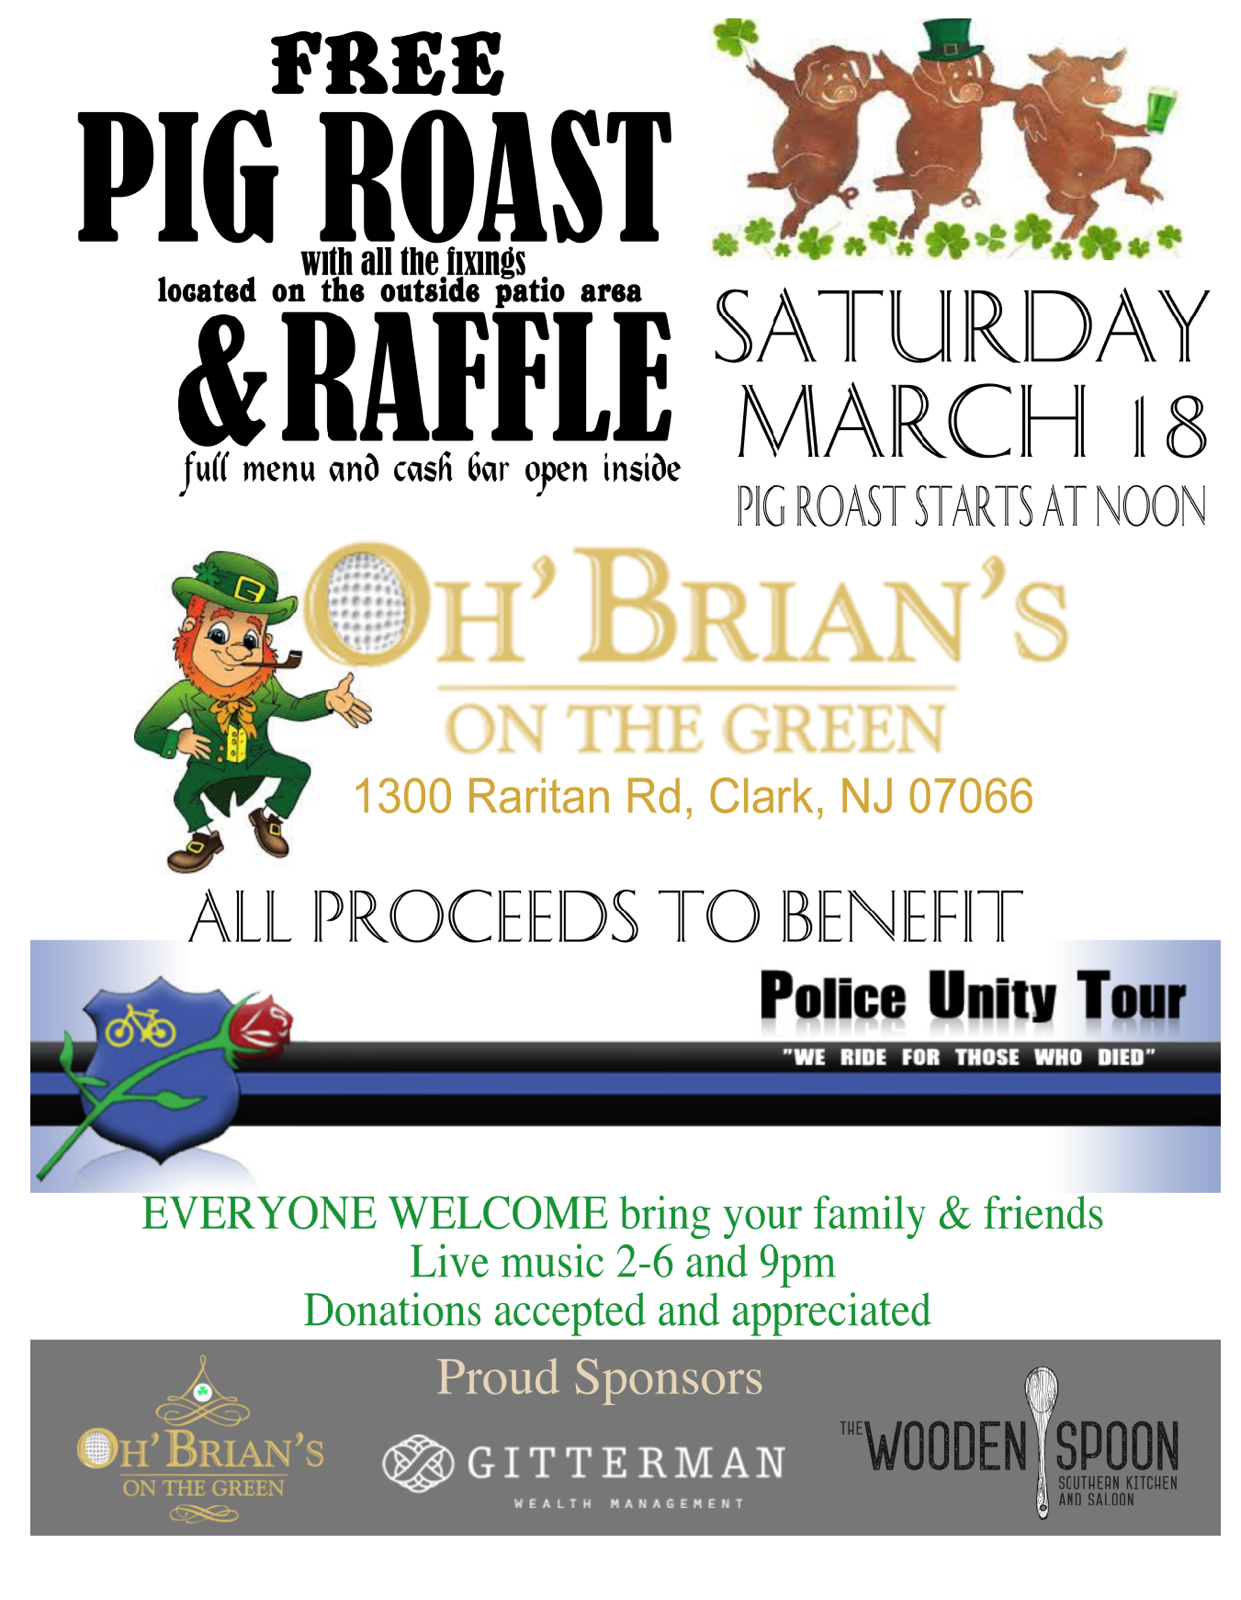 Pig Roast and Raffle to Benefit Police Unity Tour | TAPinto